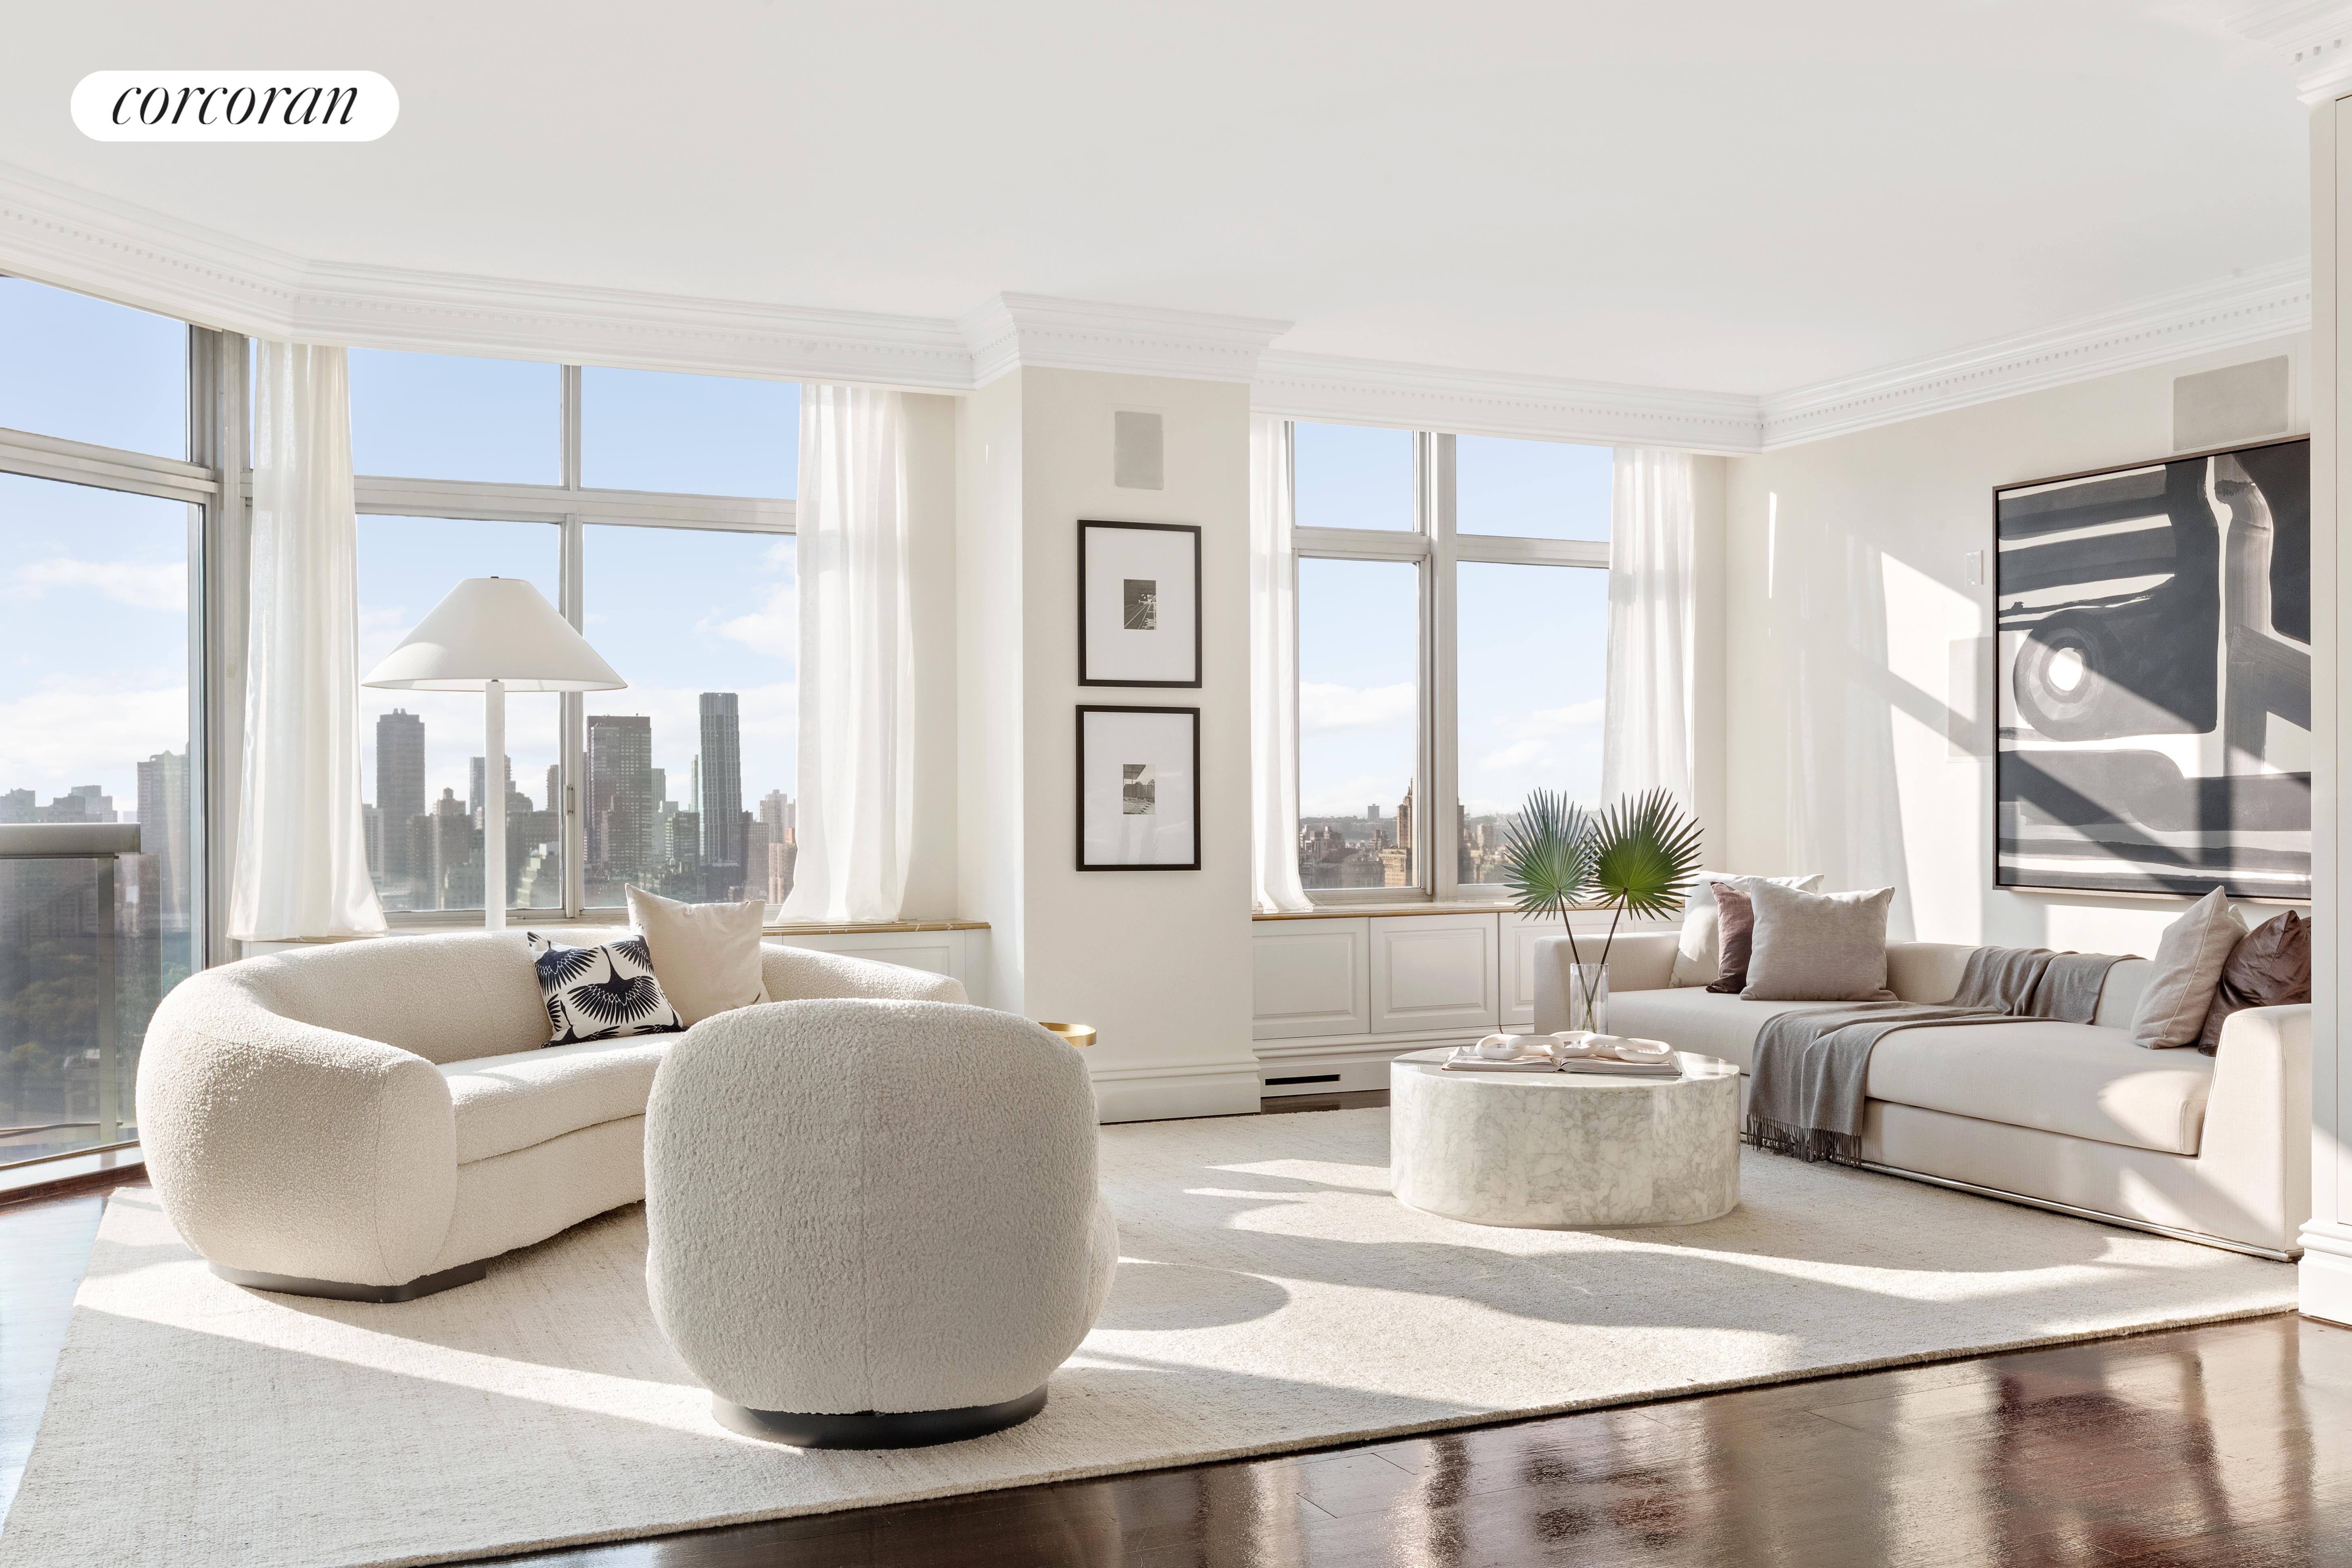 This exceptional, 5,020-square-foot duplex is perched on the 34th and 35th floors of The Royale Condominium, located at 64th and Third Avenue. Sweeping views of Central Park, East River, and southern Manhattan skyline await, plus 4 wraparound balconies (312 SF) with full panoramas.  Entertain and live with ease in this 6-bedroom, 6.5-bath bathroom dream home with only 2 residences per floor. This practical and well-designed layout features flexible use of the space, currently offering a dedicated office, home gym, and library.  The living room and dining room both face Central Park and the southern cityscape, a breathtaking vista of Manhattan's iconic landmarks. Enjoy the comfort of the windowed eat-in kitchen, a paneled library with its own bath, and a den with park views. The bedrooms are private, in separate wings of the home, all with convenient en-suite bathrooms.  The laundry room includes a washer/dryer and extensive storage solutions. Additional enhancements: an abundance of custom closets, coffered ceilings, bespoke moldings and custom finishes, a gracious marble foyer, wide-plank oak hardwood flooring, and an iron + brass handcrafted staircase to the lower level.  Among the amenities, a 24-hour doorman and concierge, resident manager, fitness center, on-site parking garage, and an entertainment lounge with a grand piano. The building is pet-friendly. Enter the Royale via a beautifully landscaped walkway and courtyard; in addition, the block also features its own community park.  The Royale at 188 East 64th Street is a contemporary luxury condominium built in 1987 with 196 units on 42 stories. It is centrally located in Lenox Hill on the Upper East Side, surrounded by elegant apartment buildings and townhouses. Nearby cultural sites include The Frick Collection, The Metropolitan Museum of Art, Park Avenue Armory, and The Asia Society. Local classics Bergdorf Goodman and Bloomingdale's are just a few blocks away. Co-Exclusive